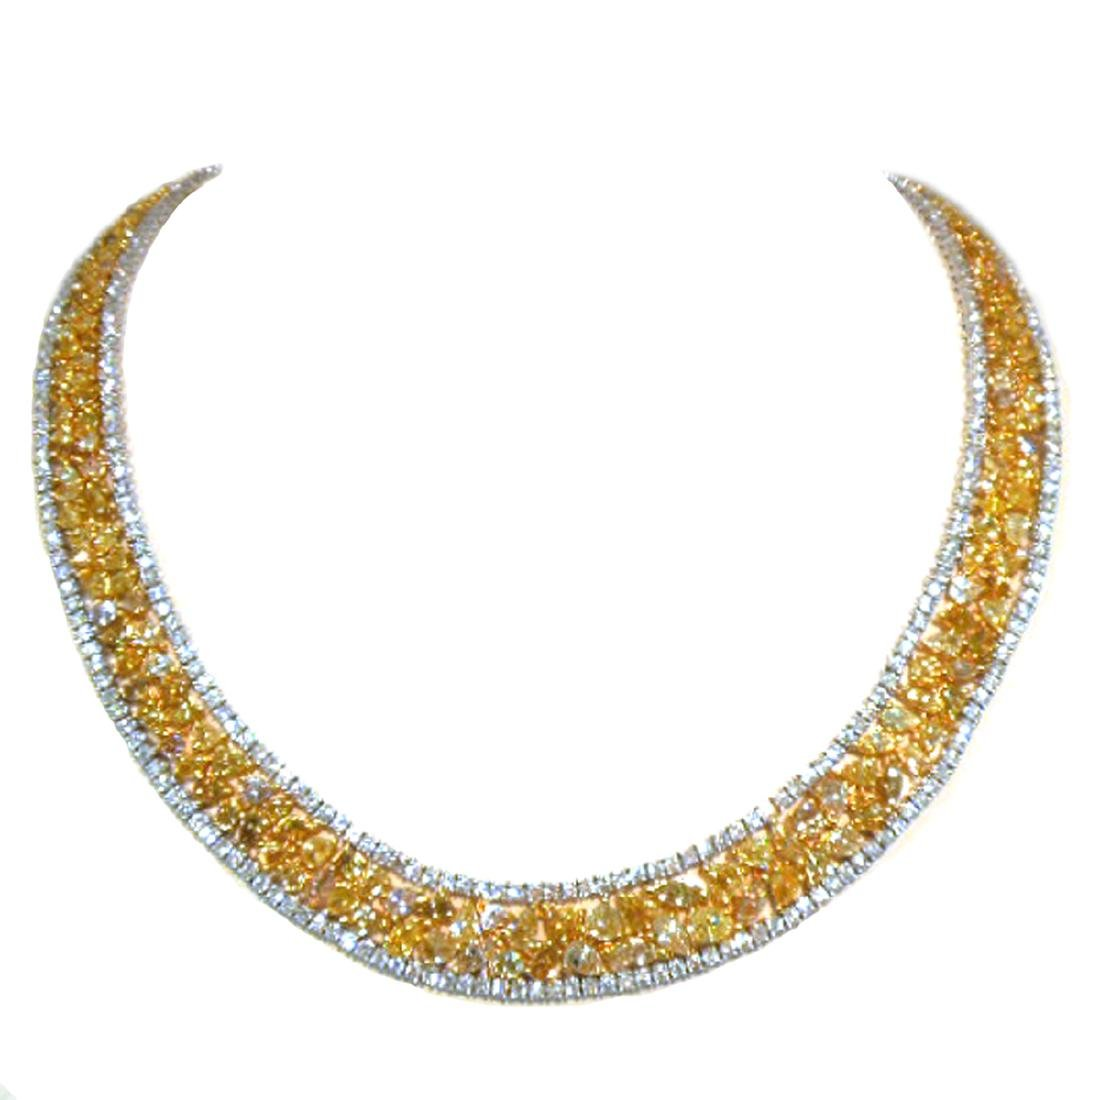 Necklace set with 44.50ct yellow and white diamond